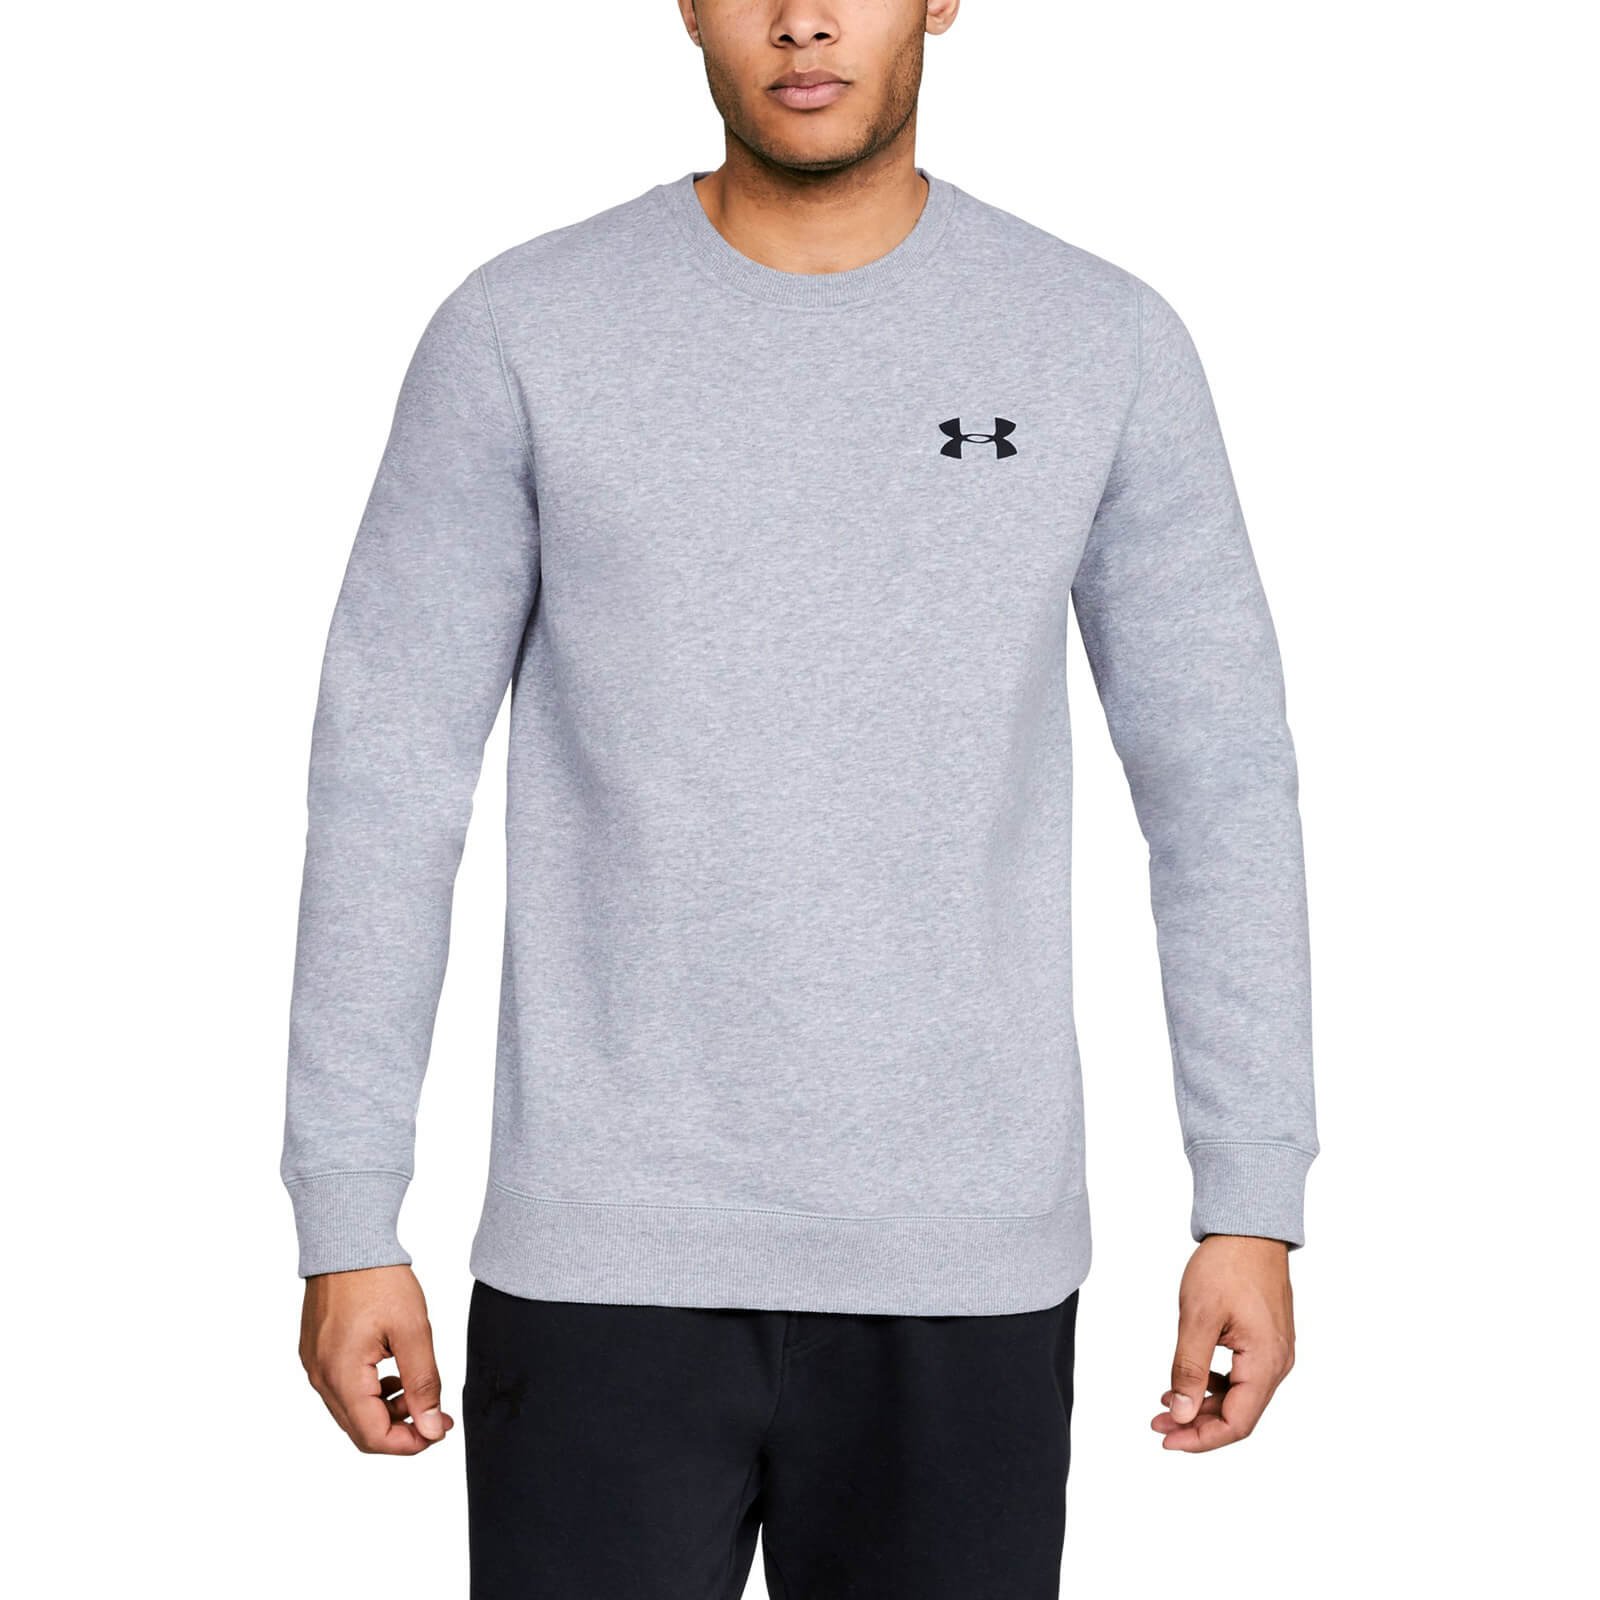 e670c301ca Under Armour Men's Rival Solid Fitted Crew Sweatshirt - Grey